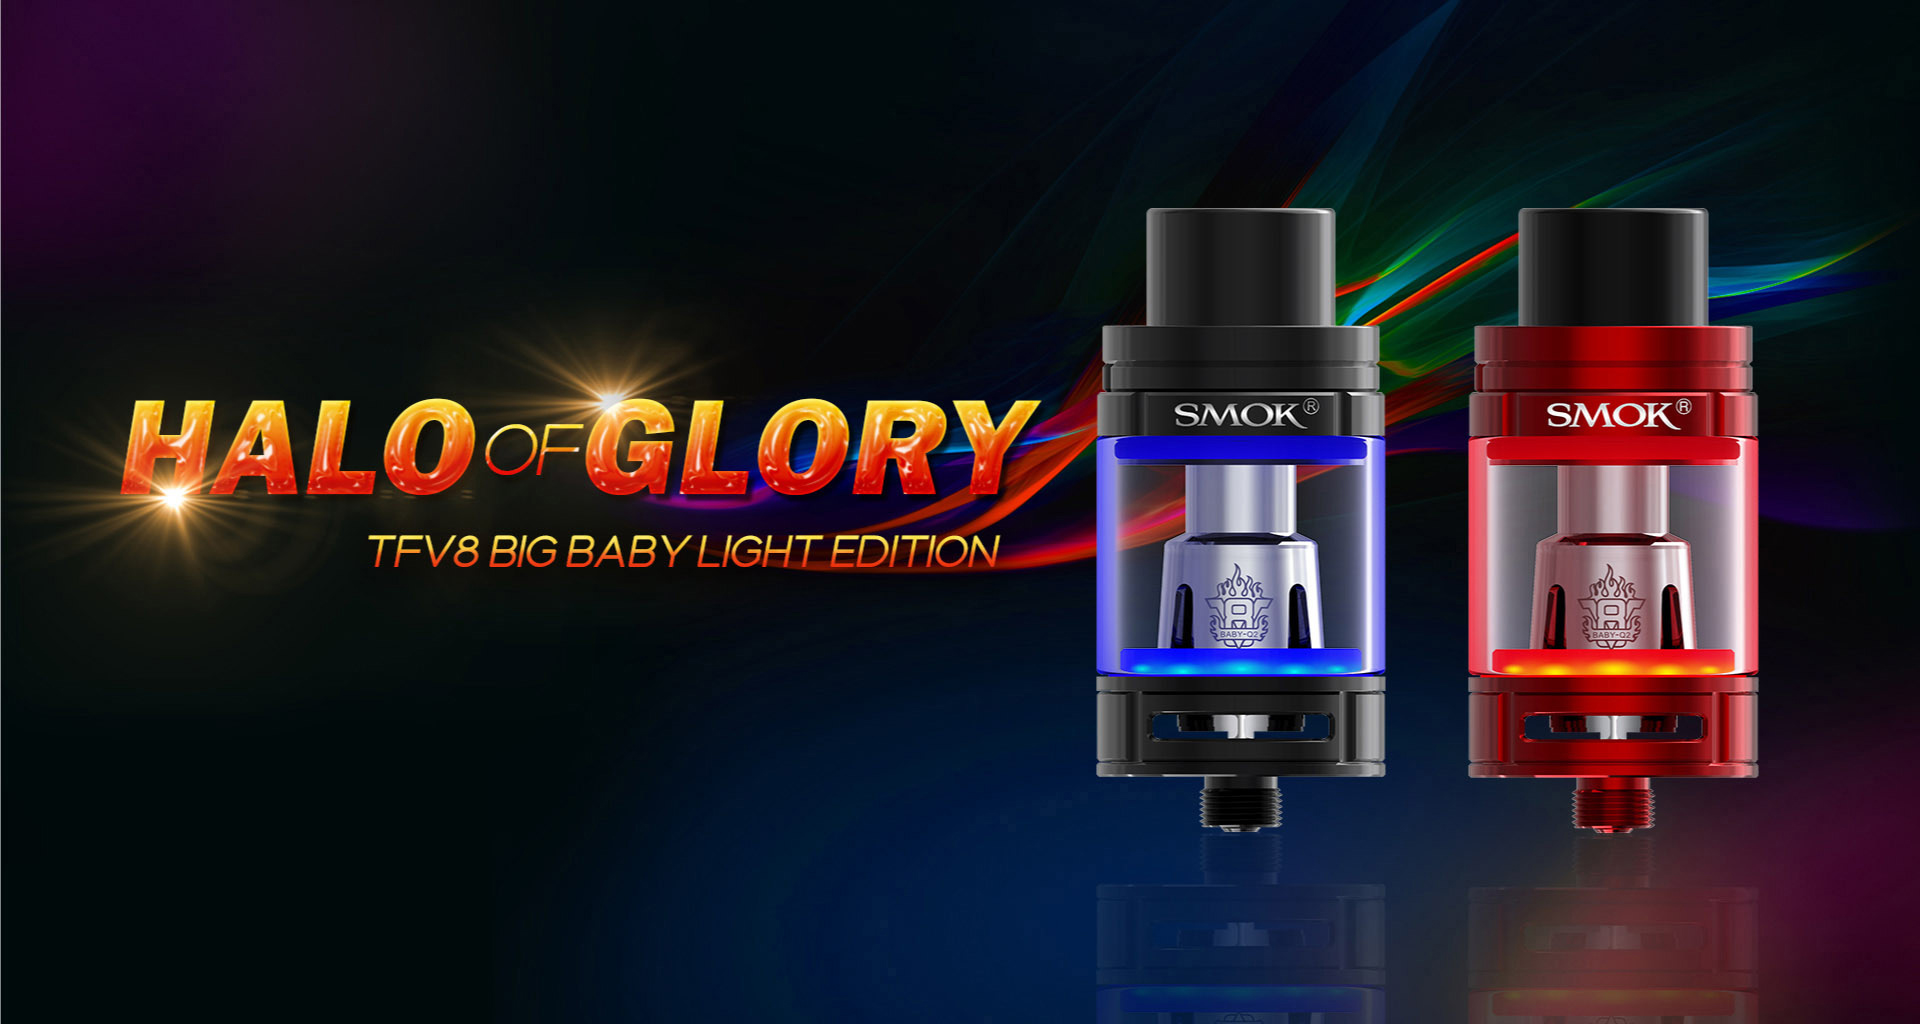 SMOK TFV8 Big Baby Light Edition 1